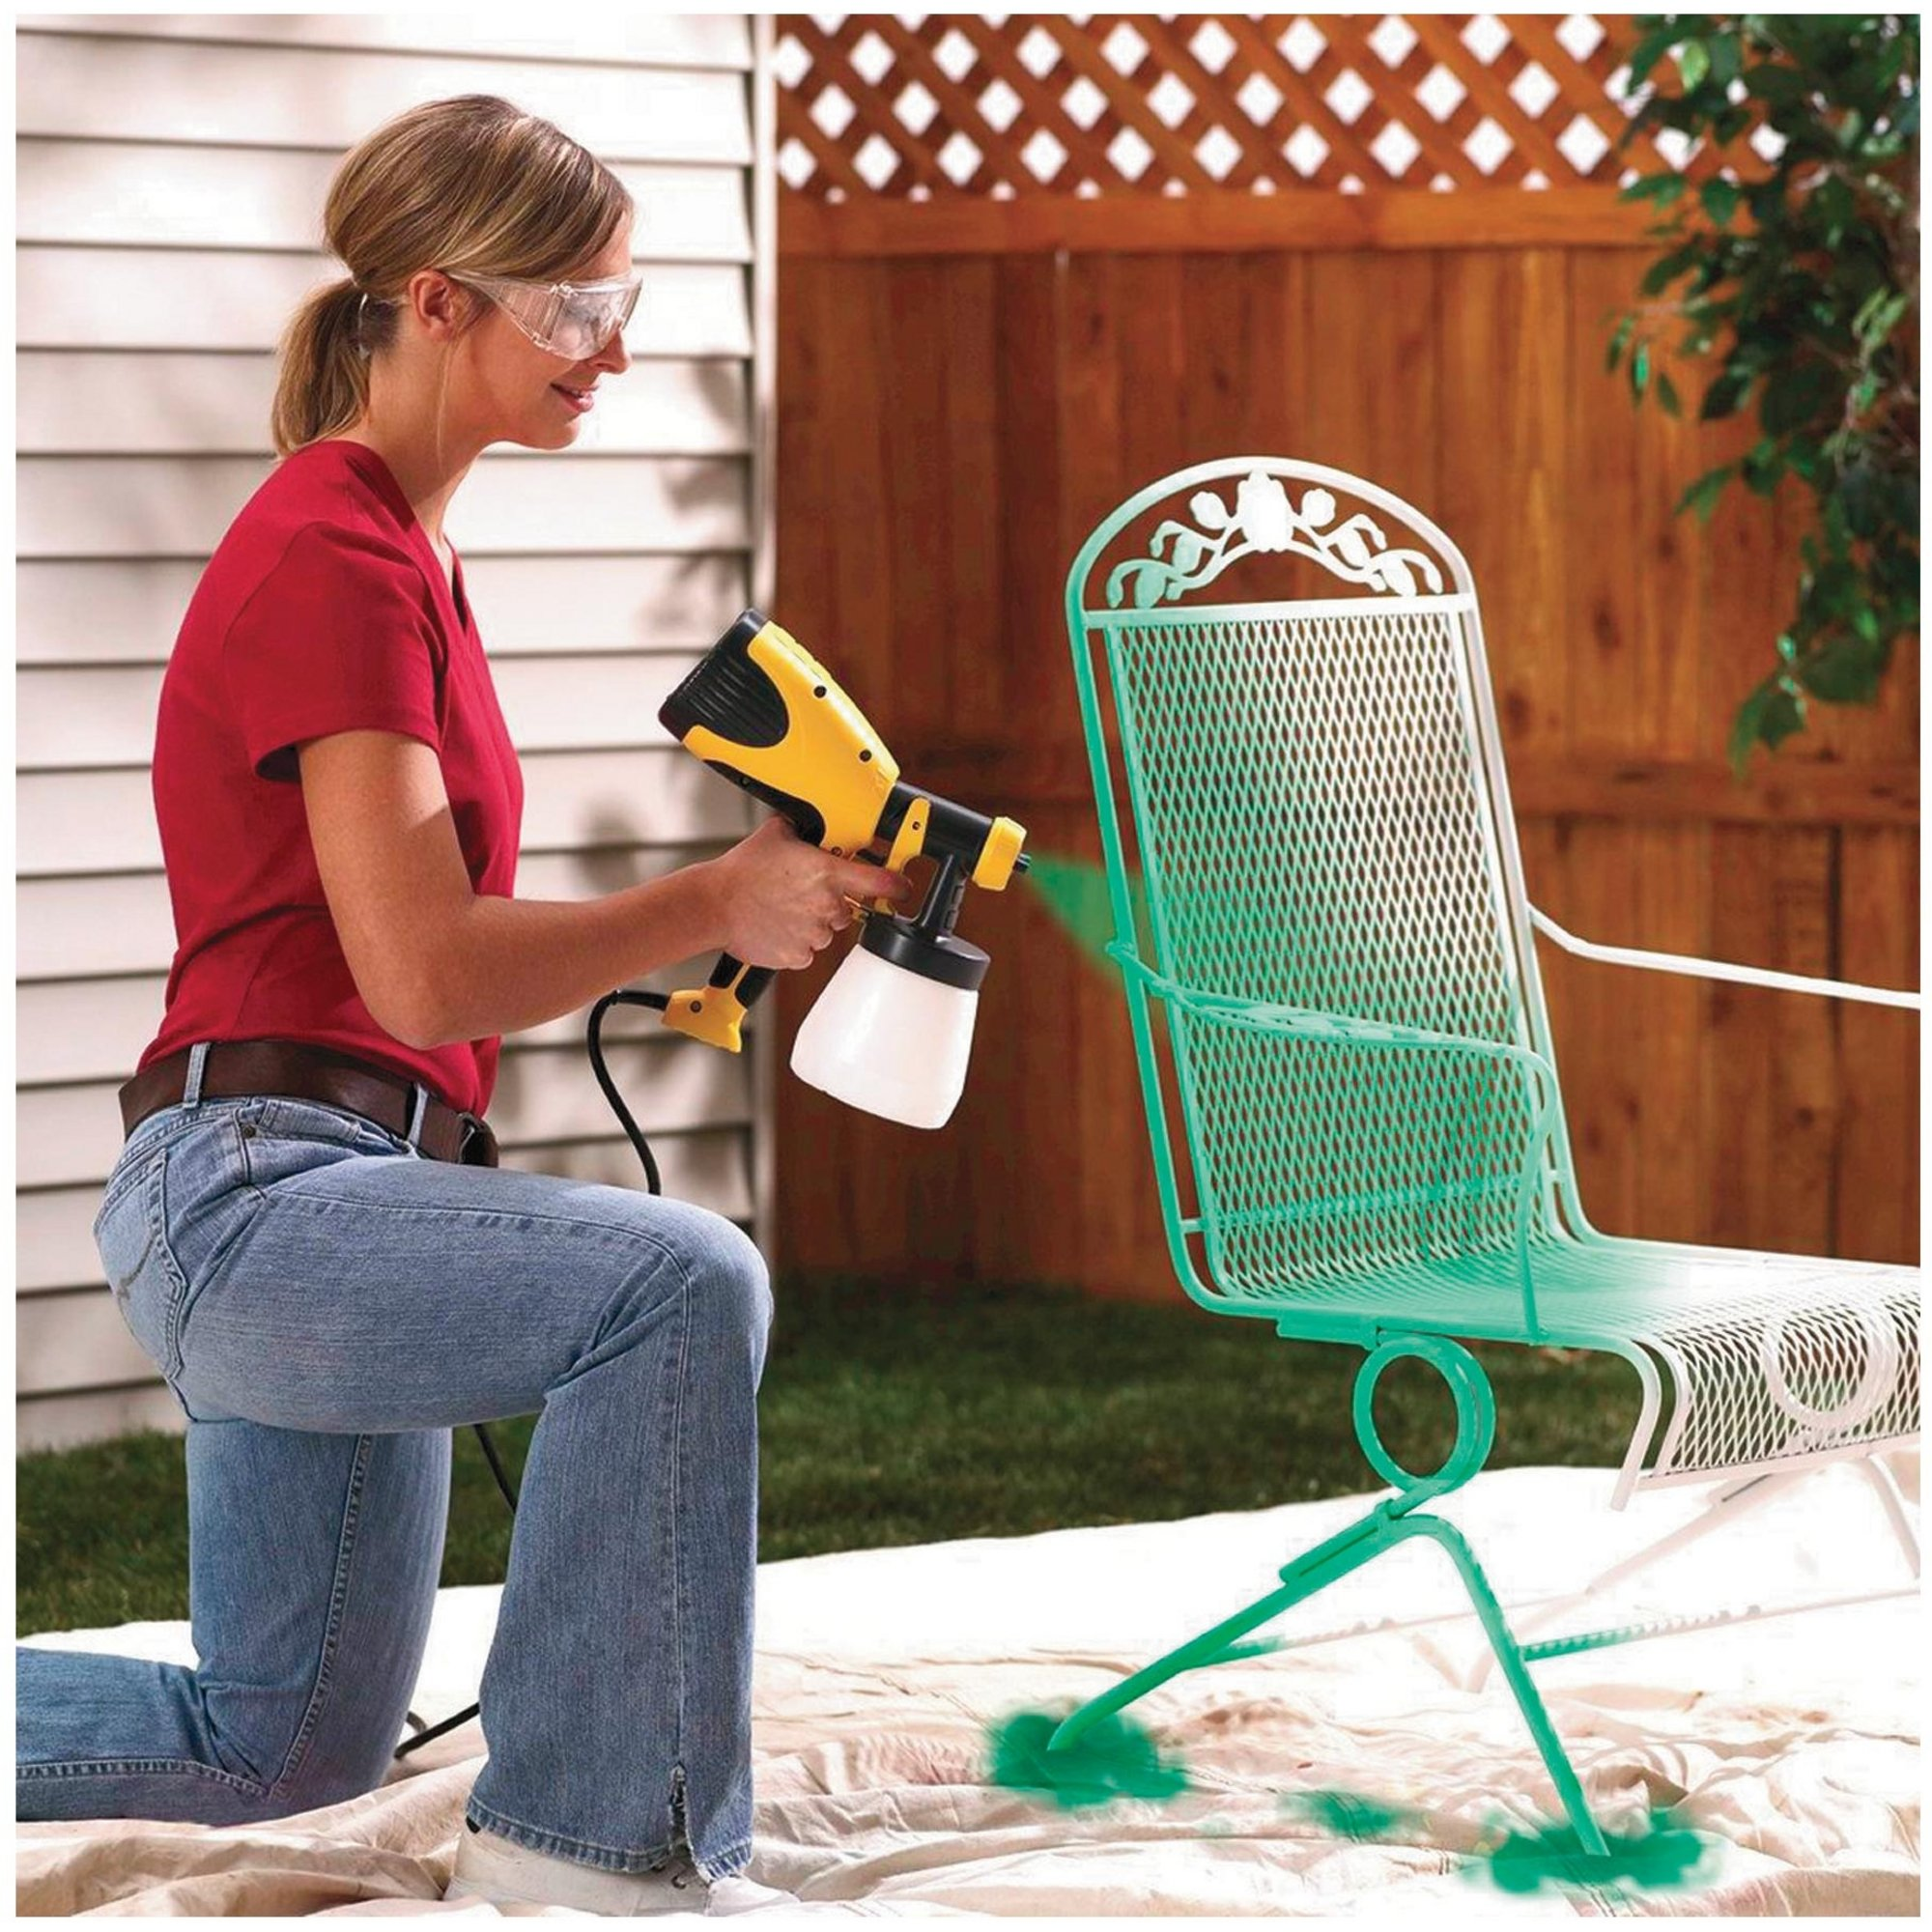 How To Use An Airless Paint Sprayer Step By Step Guide